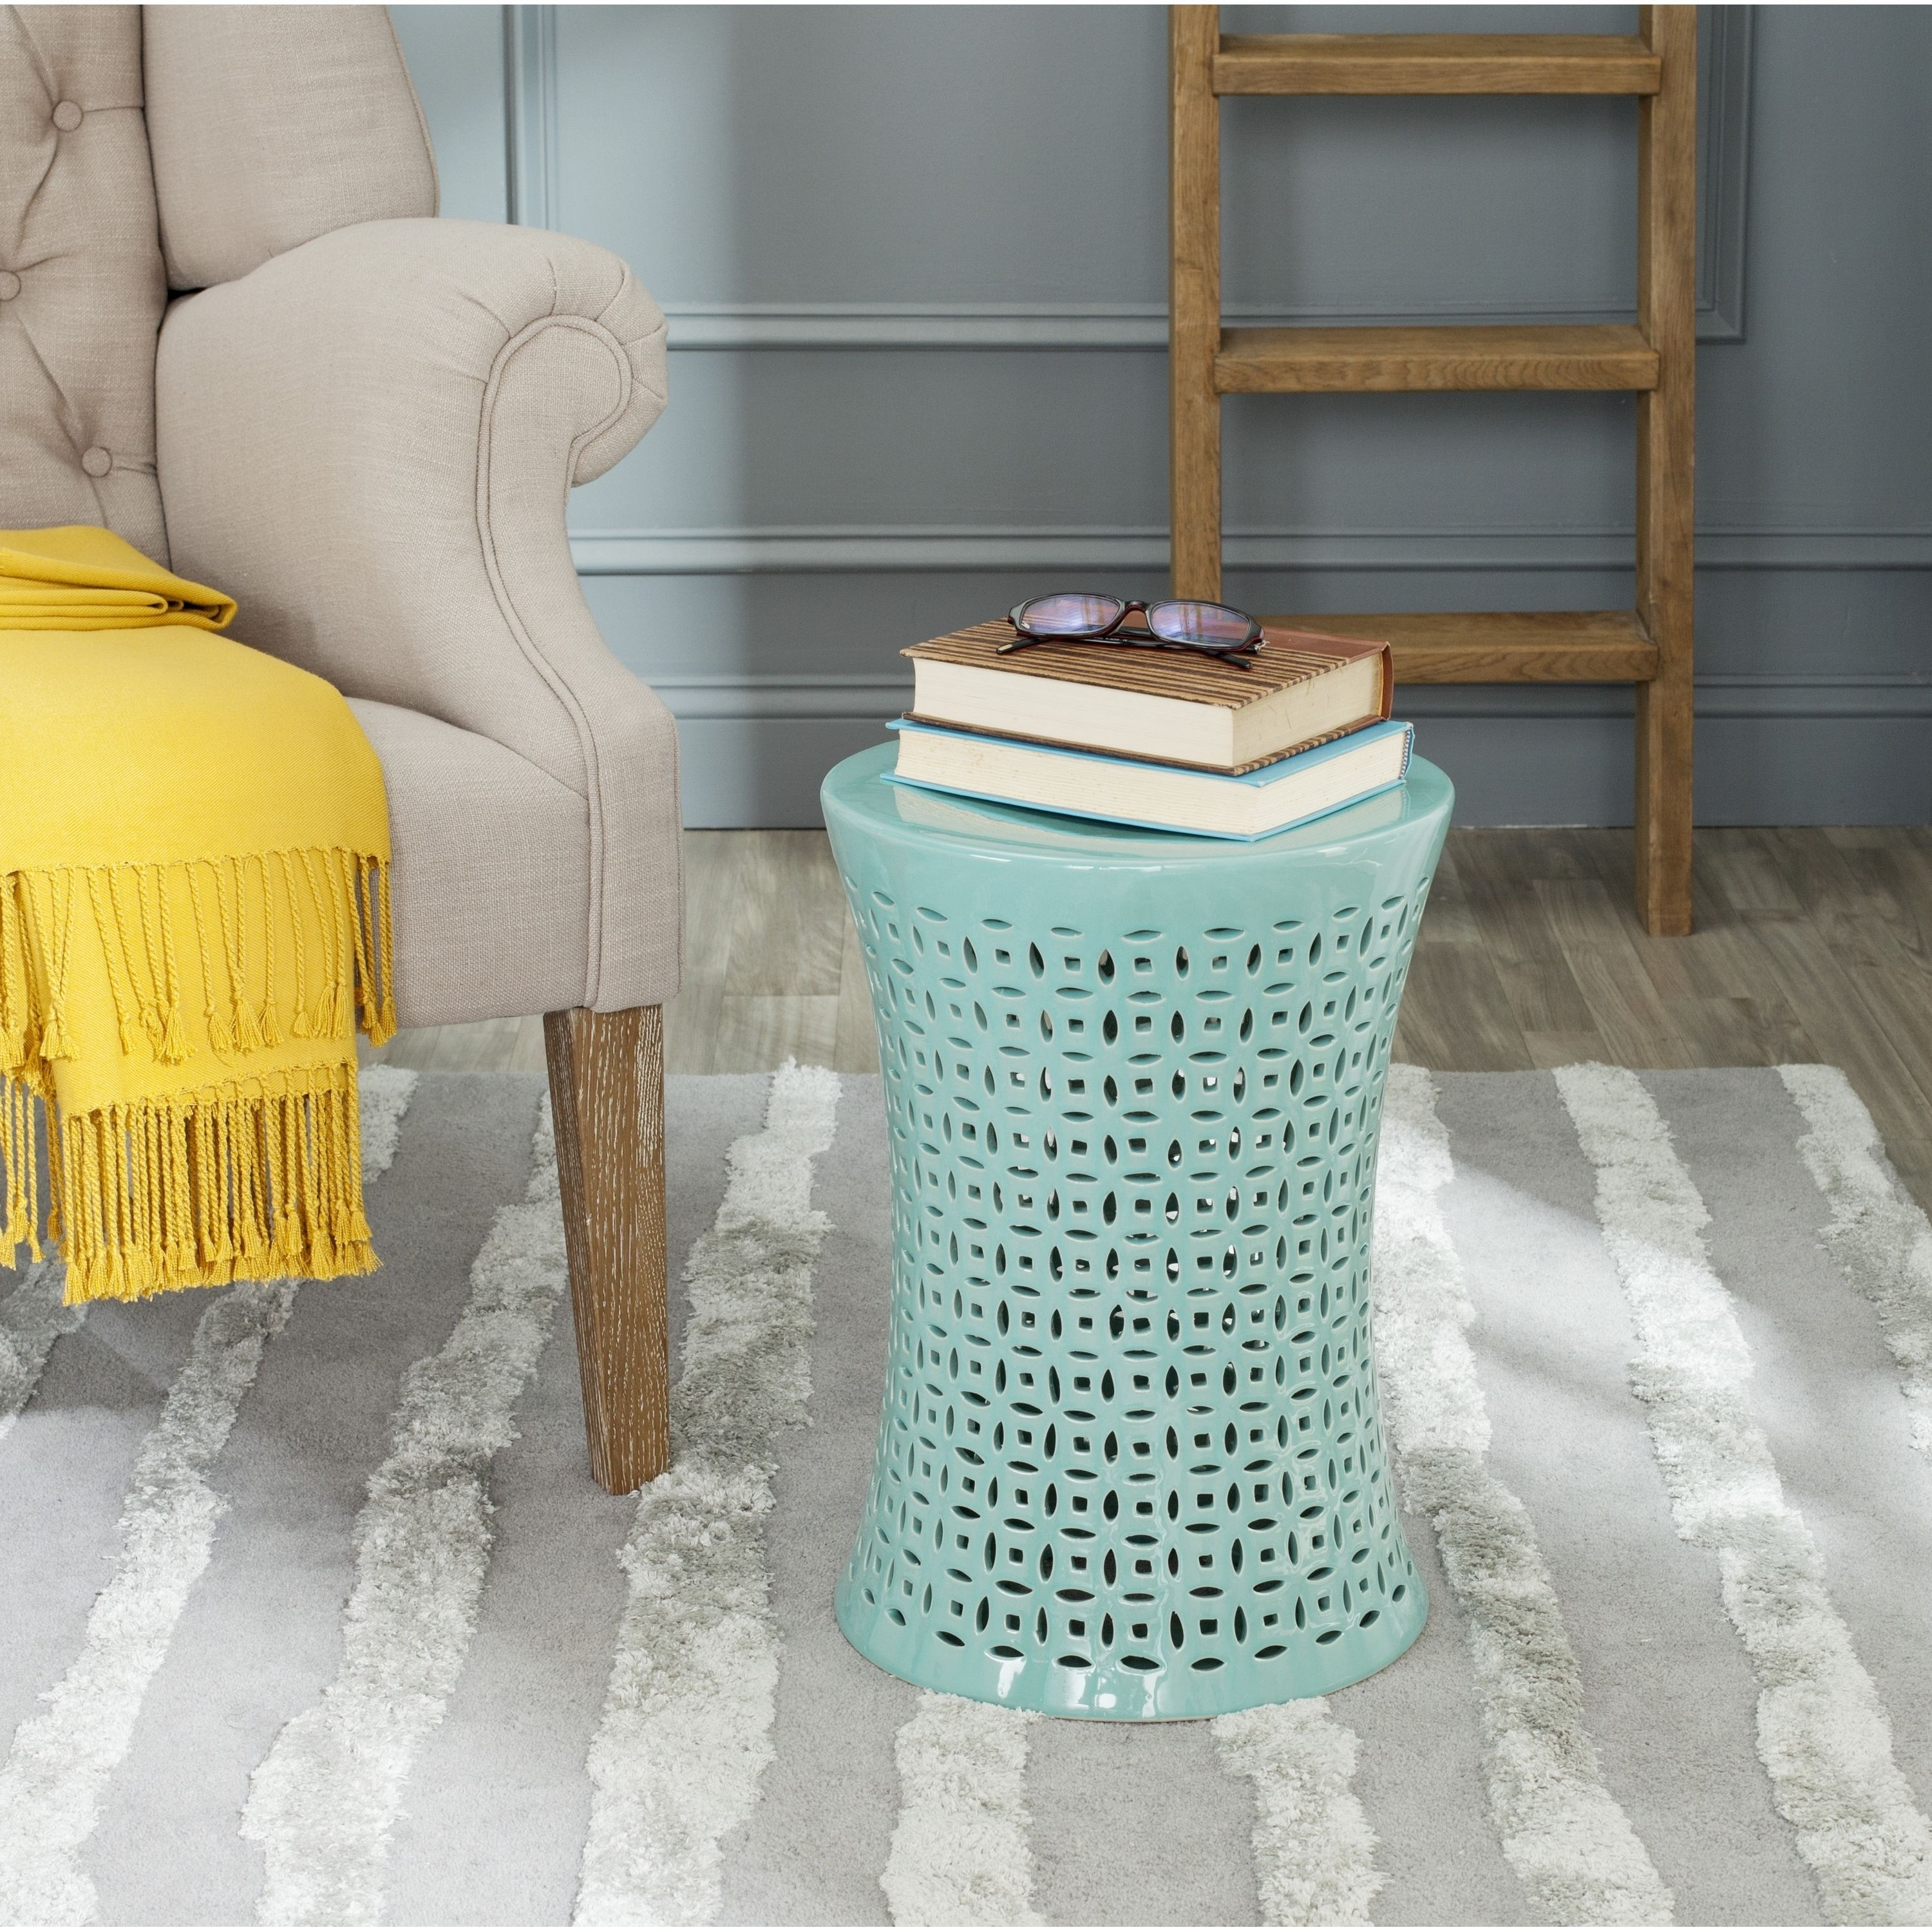 Fine Safavieh Camilla Aqua Garden Stool Acs4550C Green Andrewgaddart Wooden Chair Designs For Living Room Andrewgaddartcom